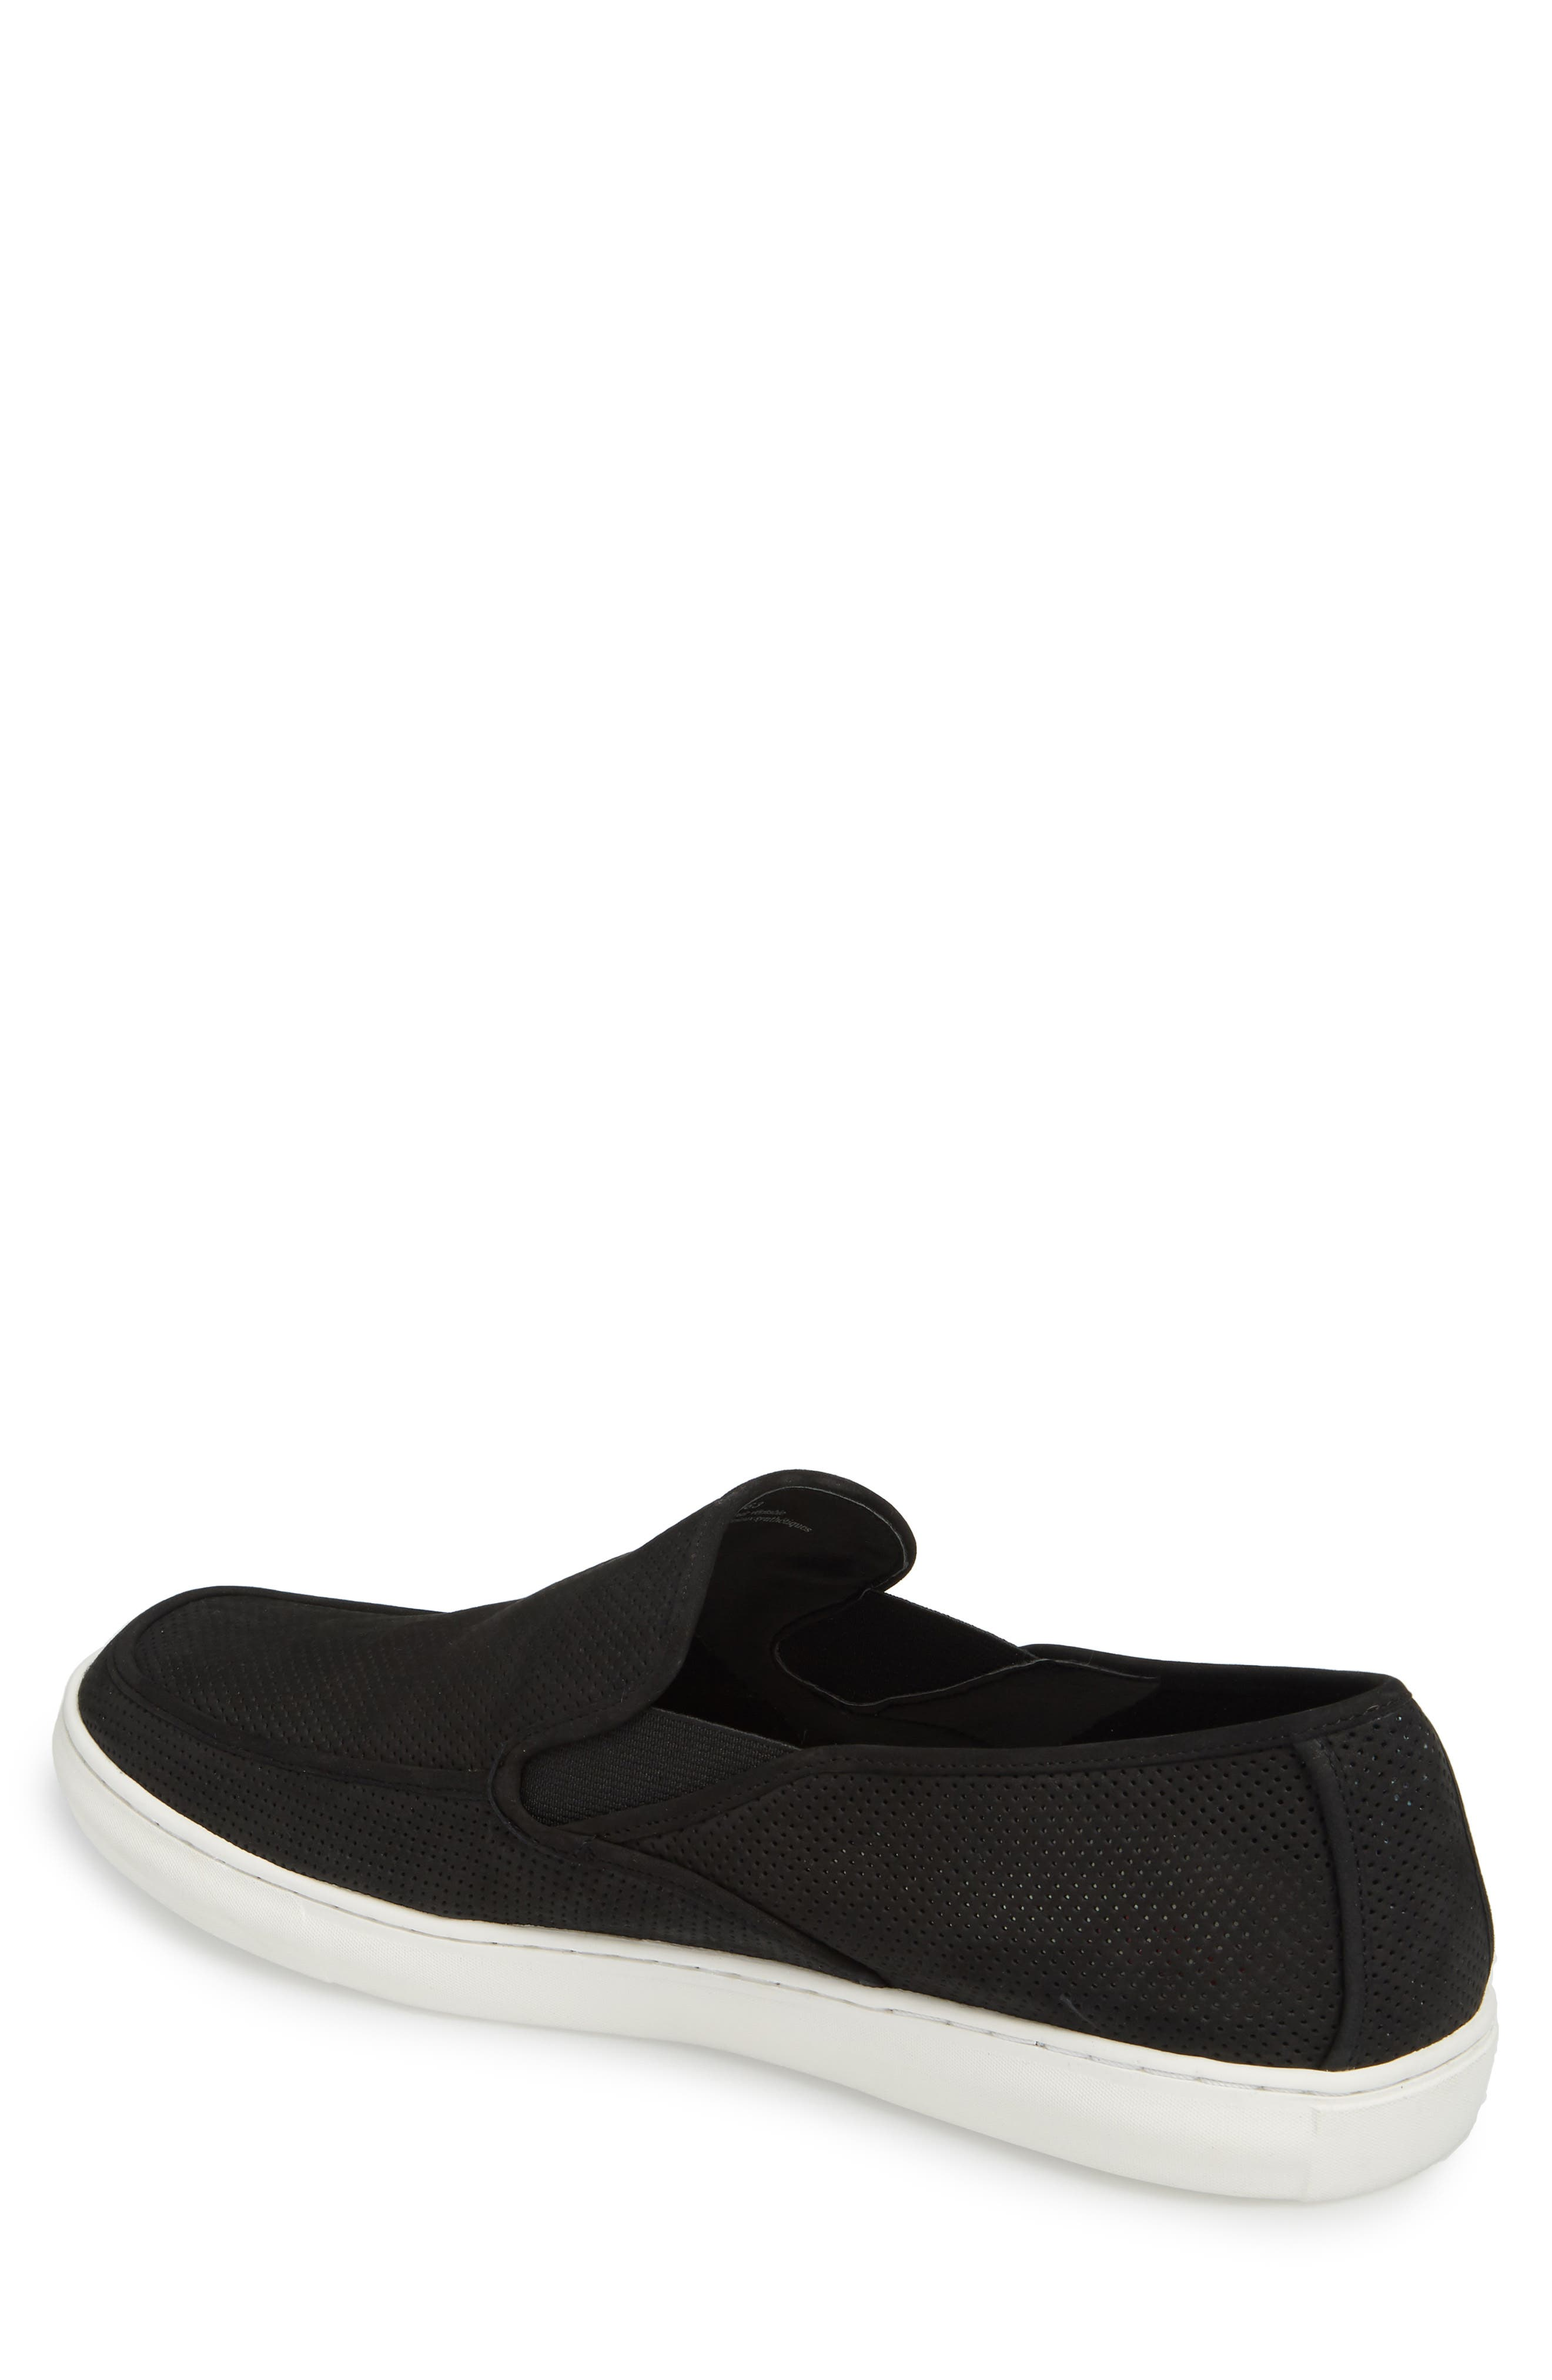 'Venice' Perforated Suede Slip-On,                             Alternate thumbnail 2, color,                             BLACK NUBUCK